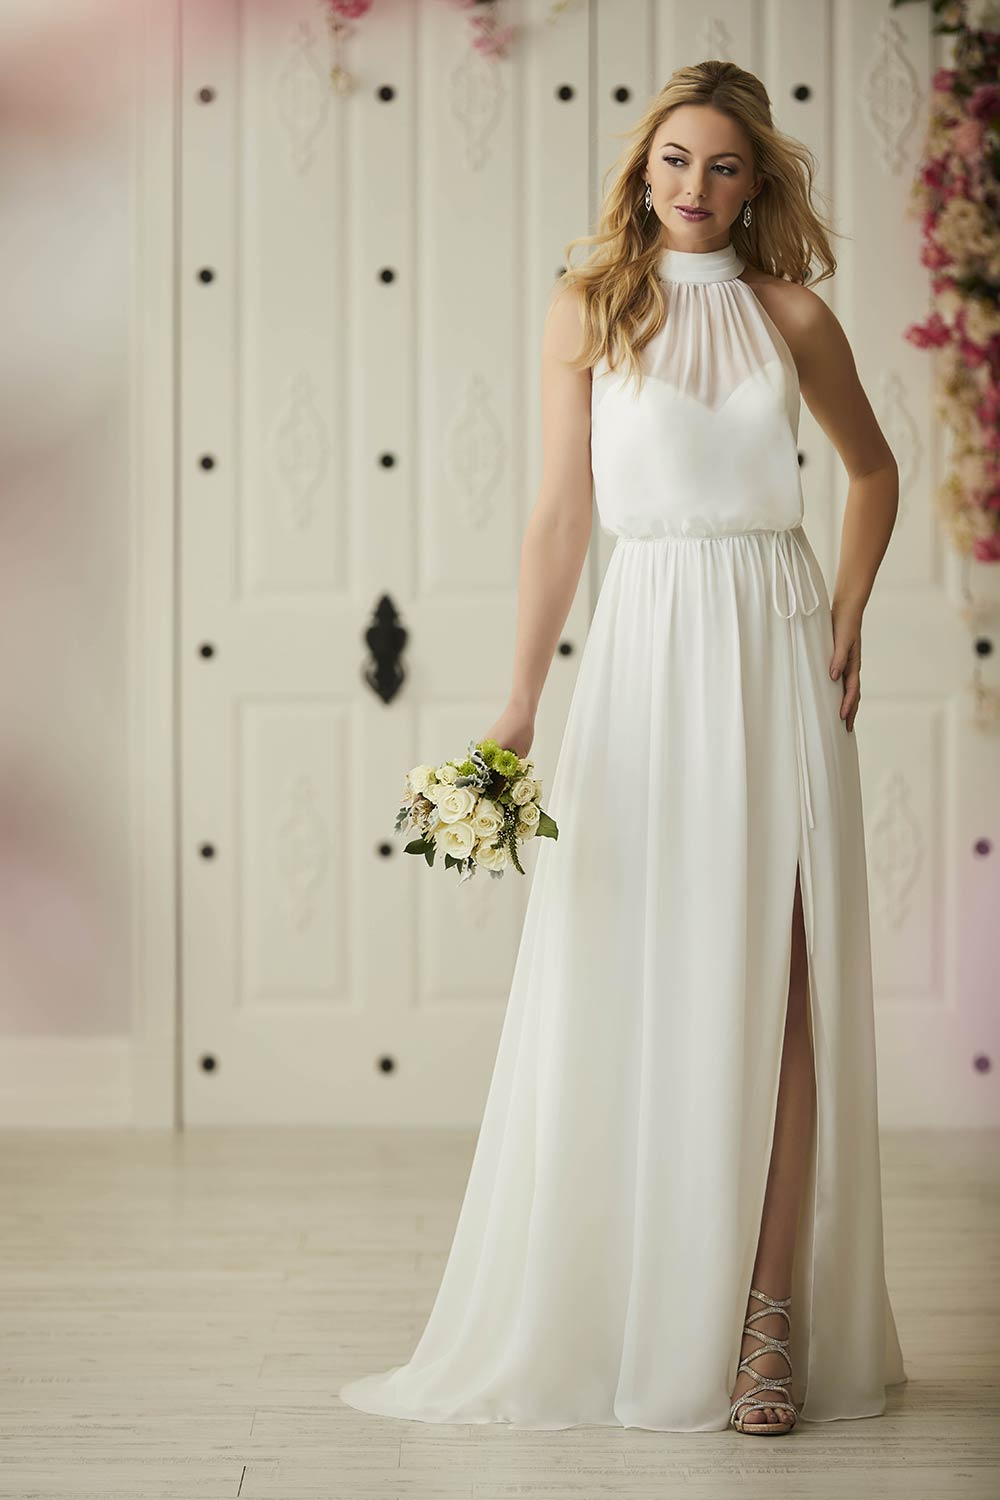 bridesmaid-dresses-jacquelin-bridals-canada-27312